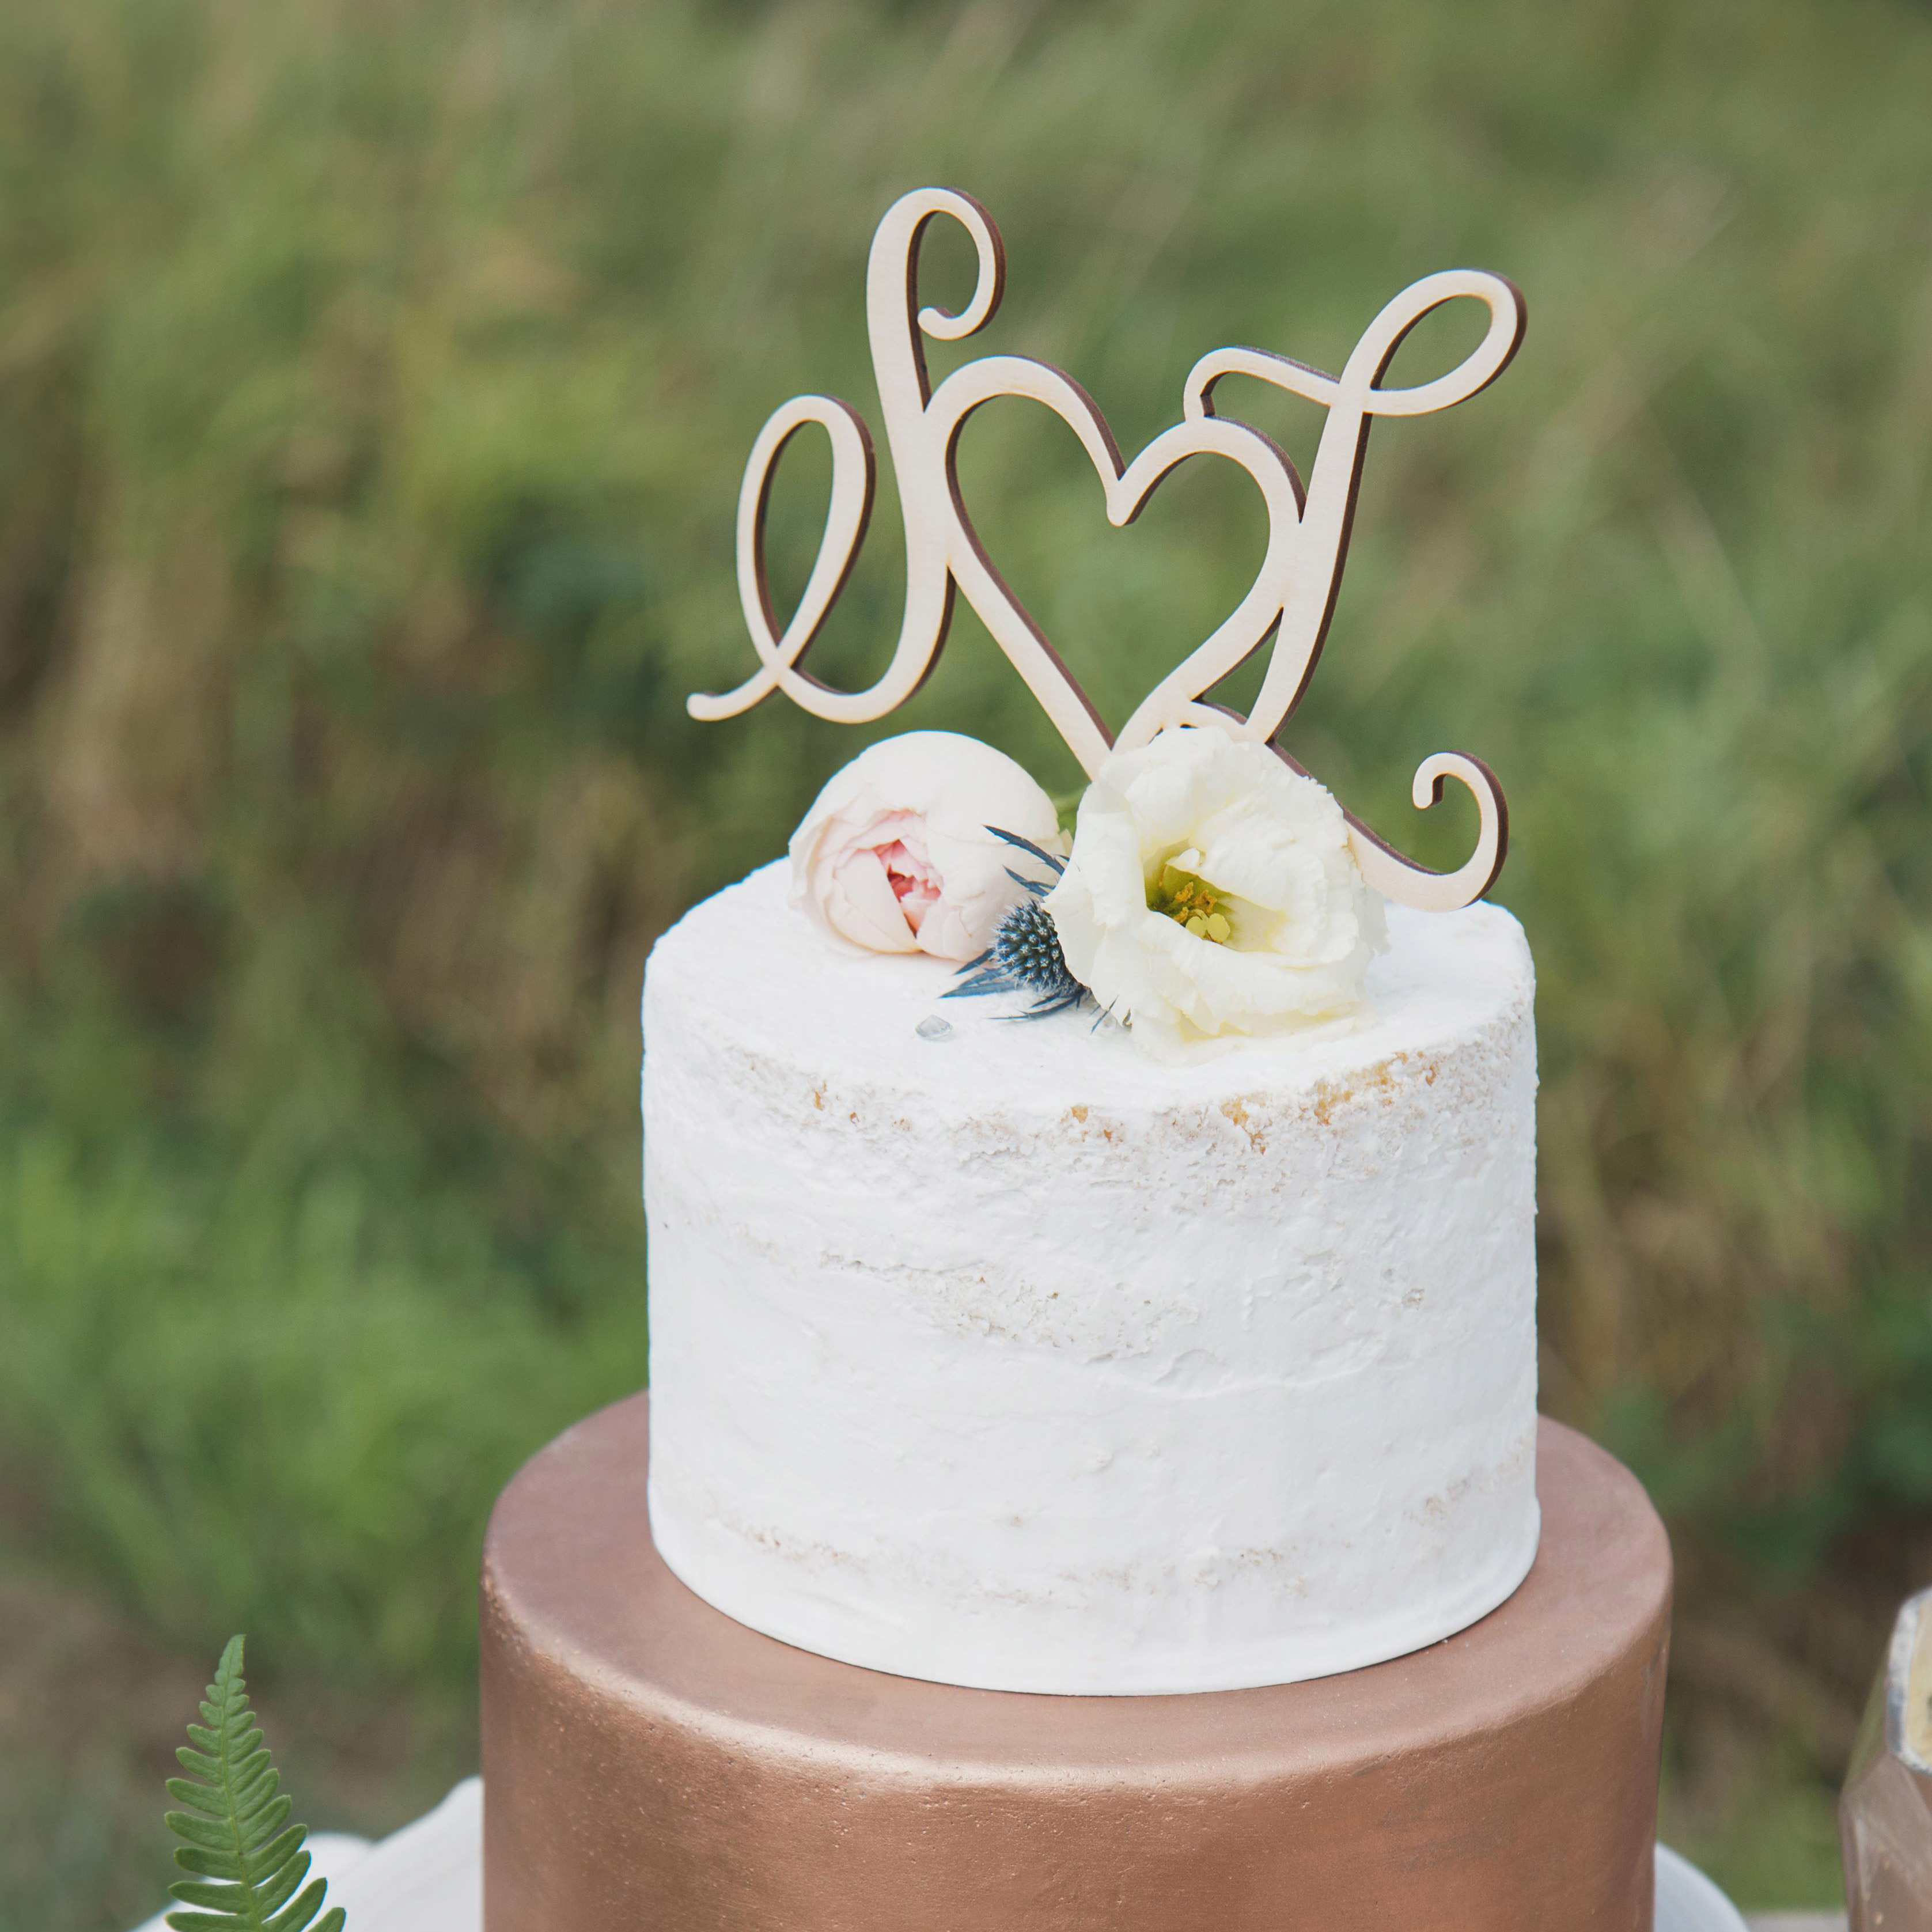 Elegant monogram wedding cake topper by Thistle and Lace